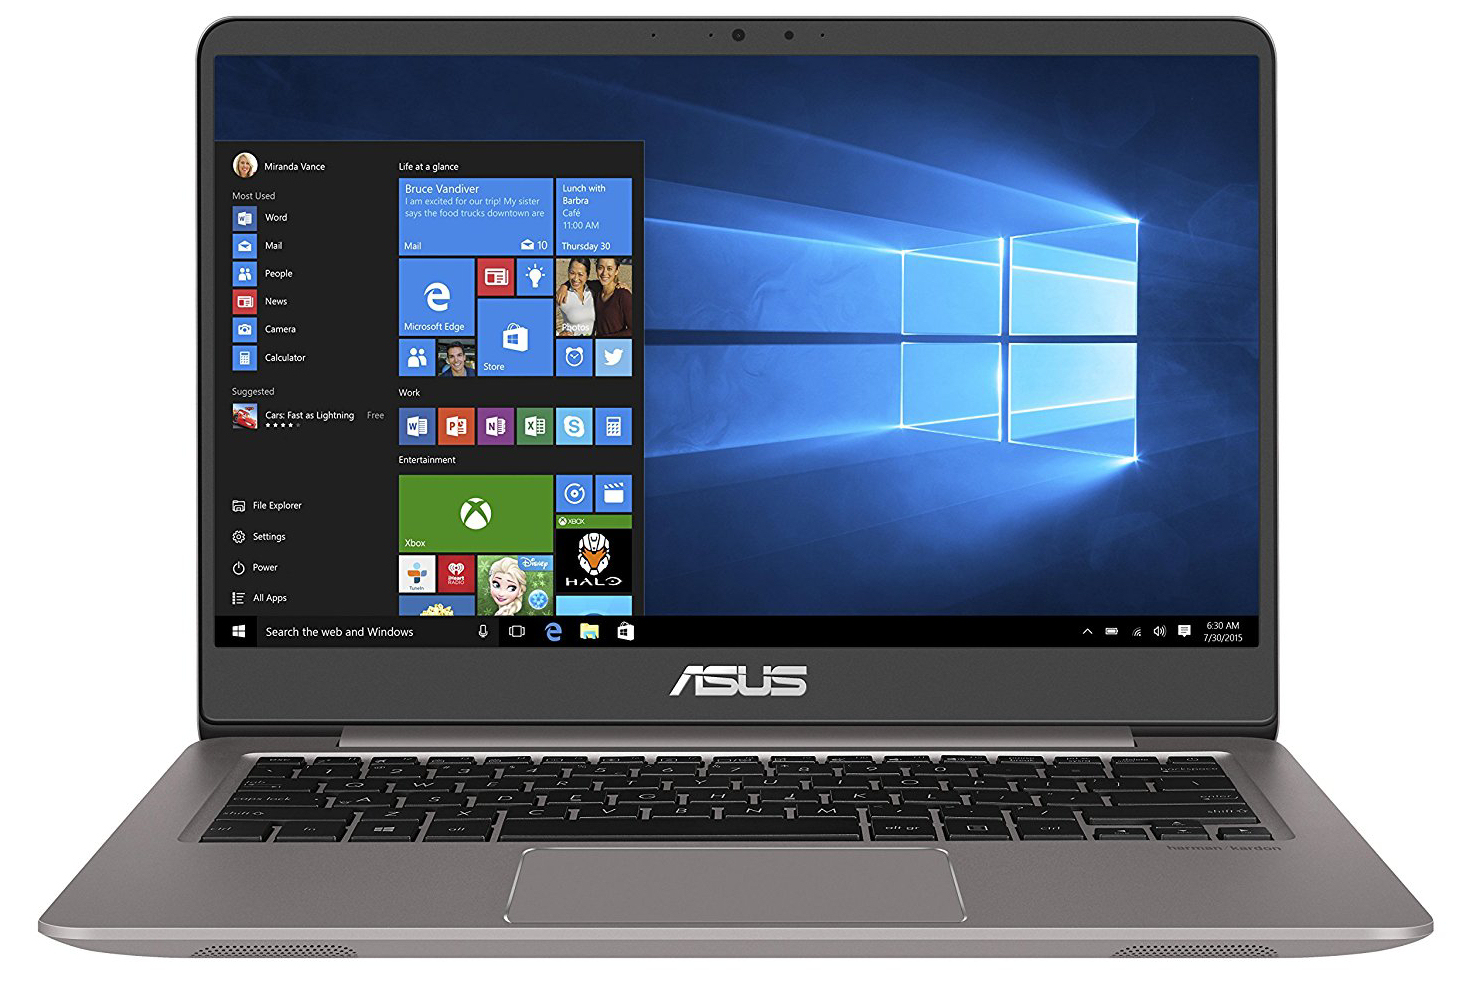 Acer Aspire 7736z Wiring Diagram Asus Zenbook Ux3410uq 7500u 940mx Full Hd Laptop Review Resolution